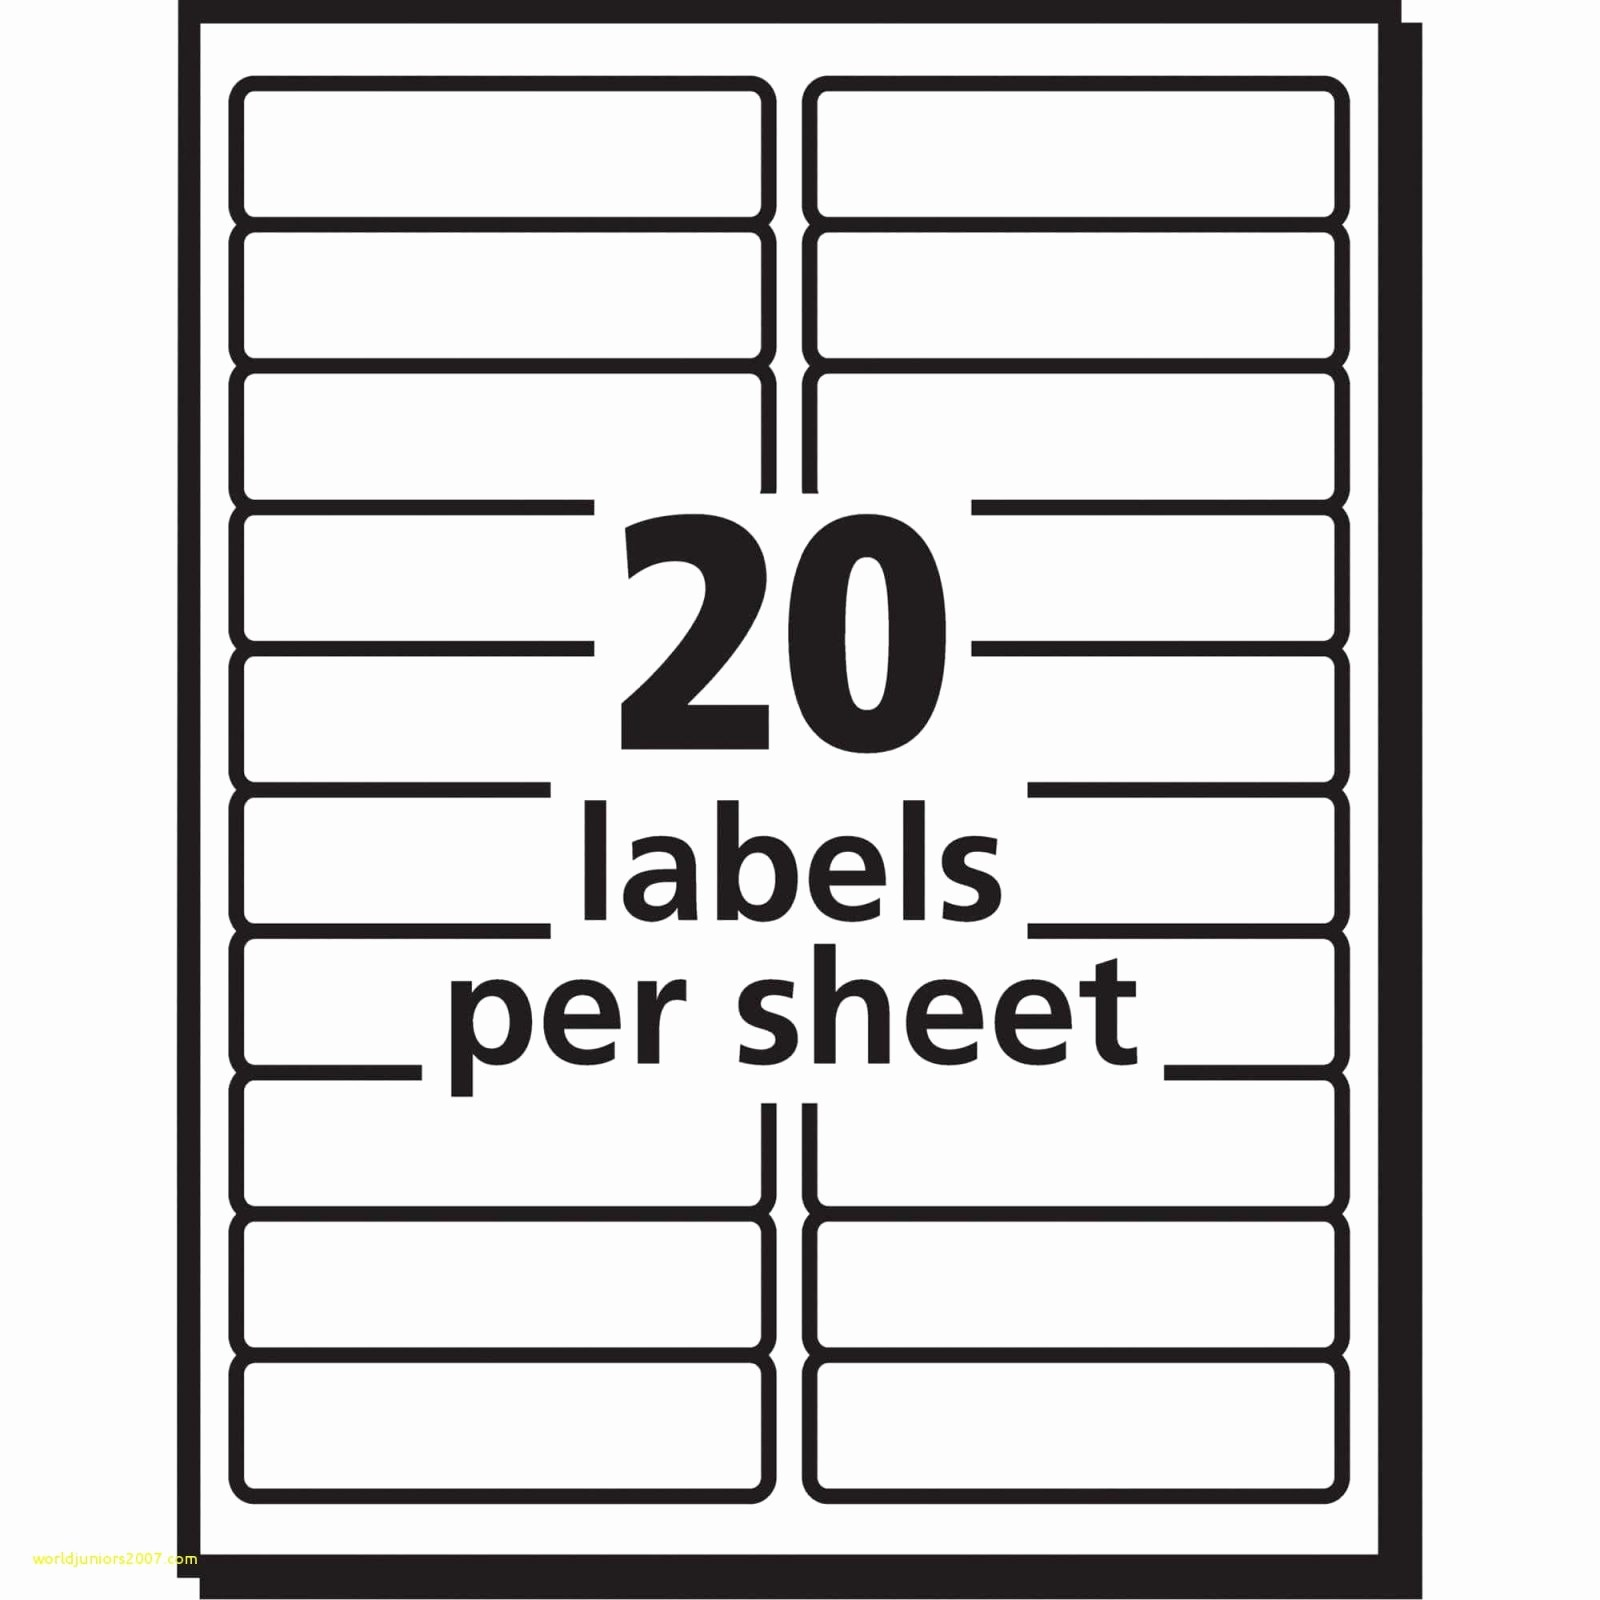 Avery Template Return Address Labels Unique Labels Per Sheet Template Excel Avery Xerox Address